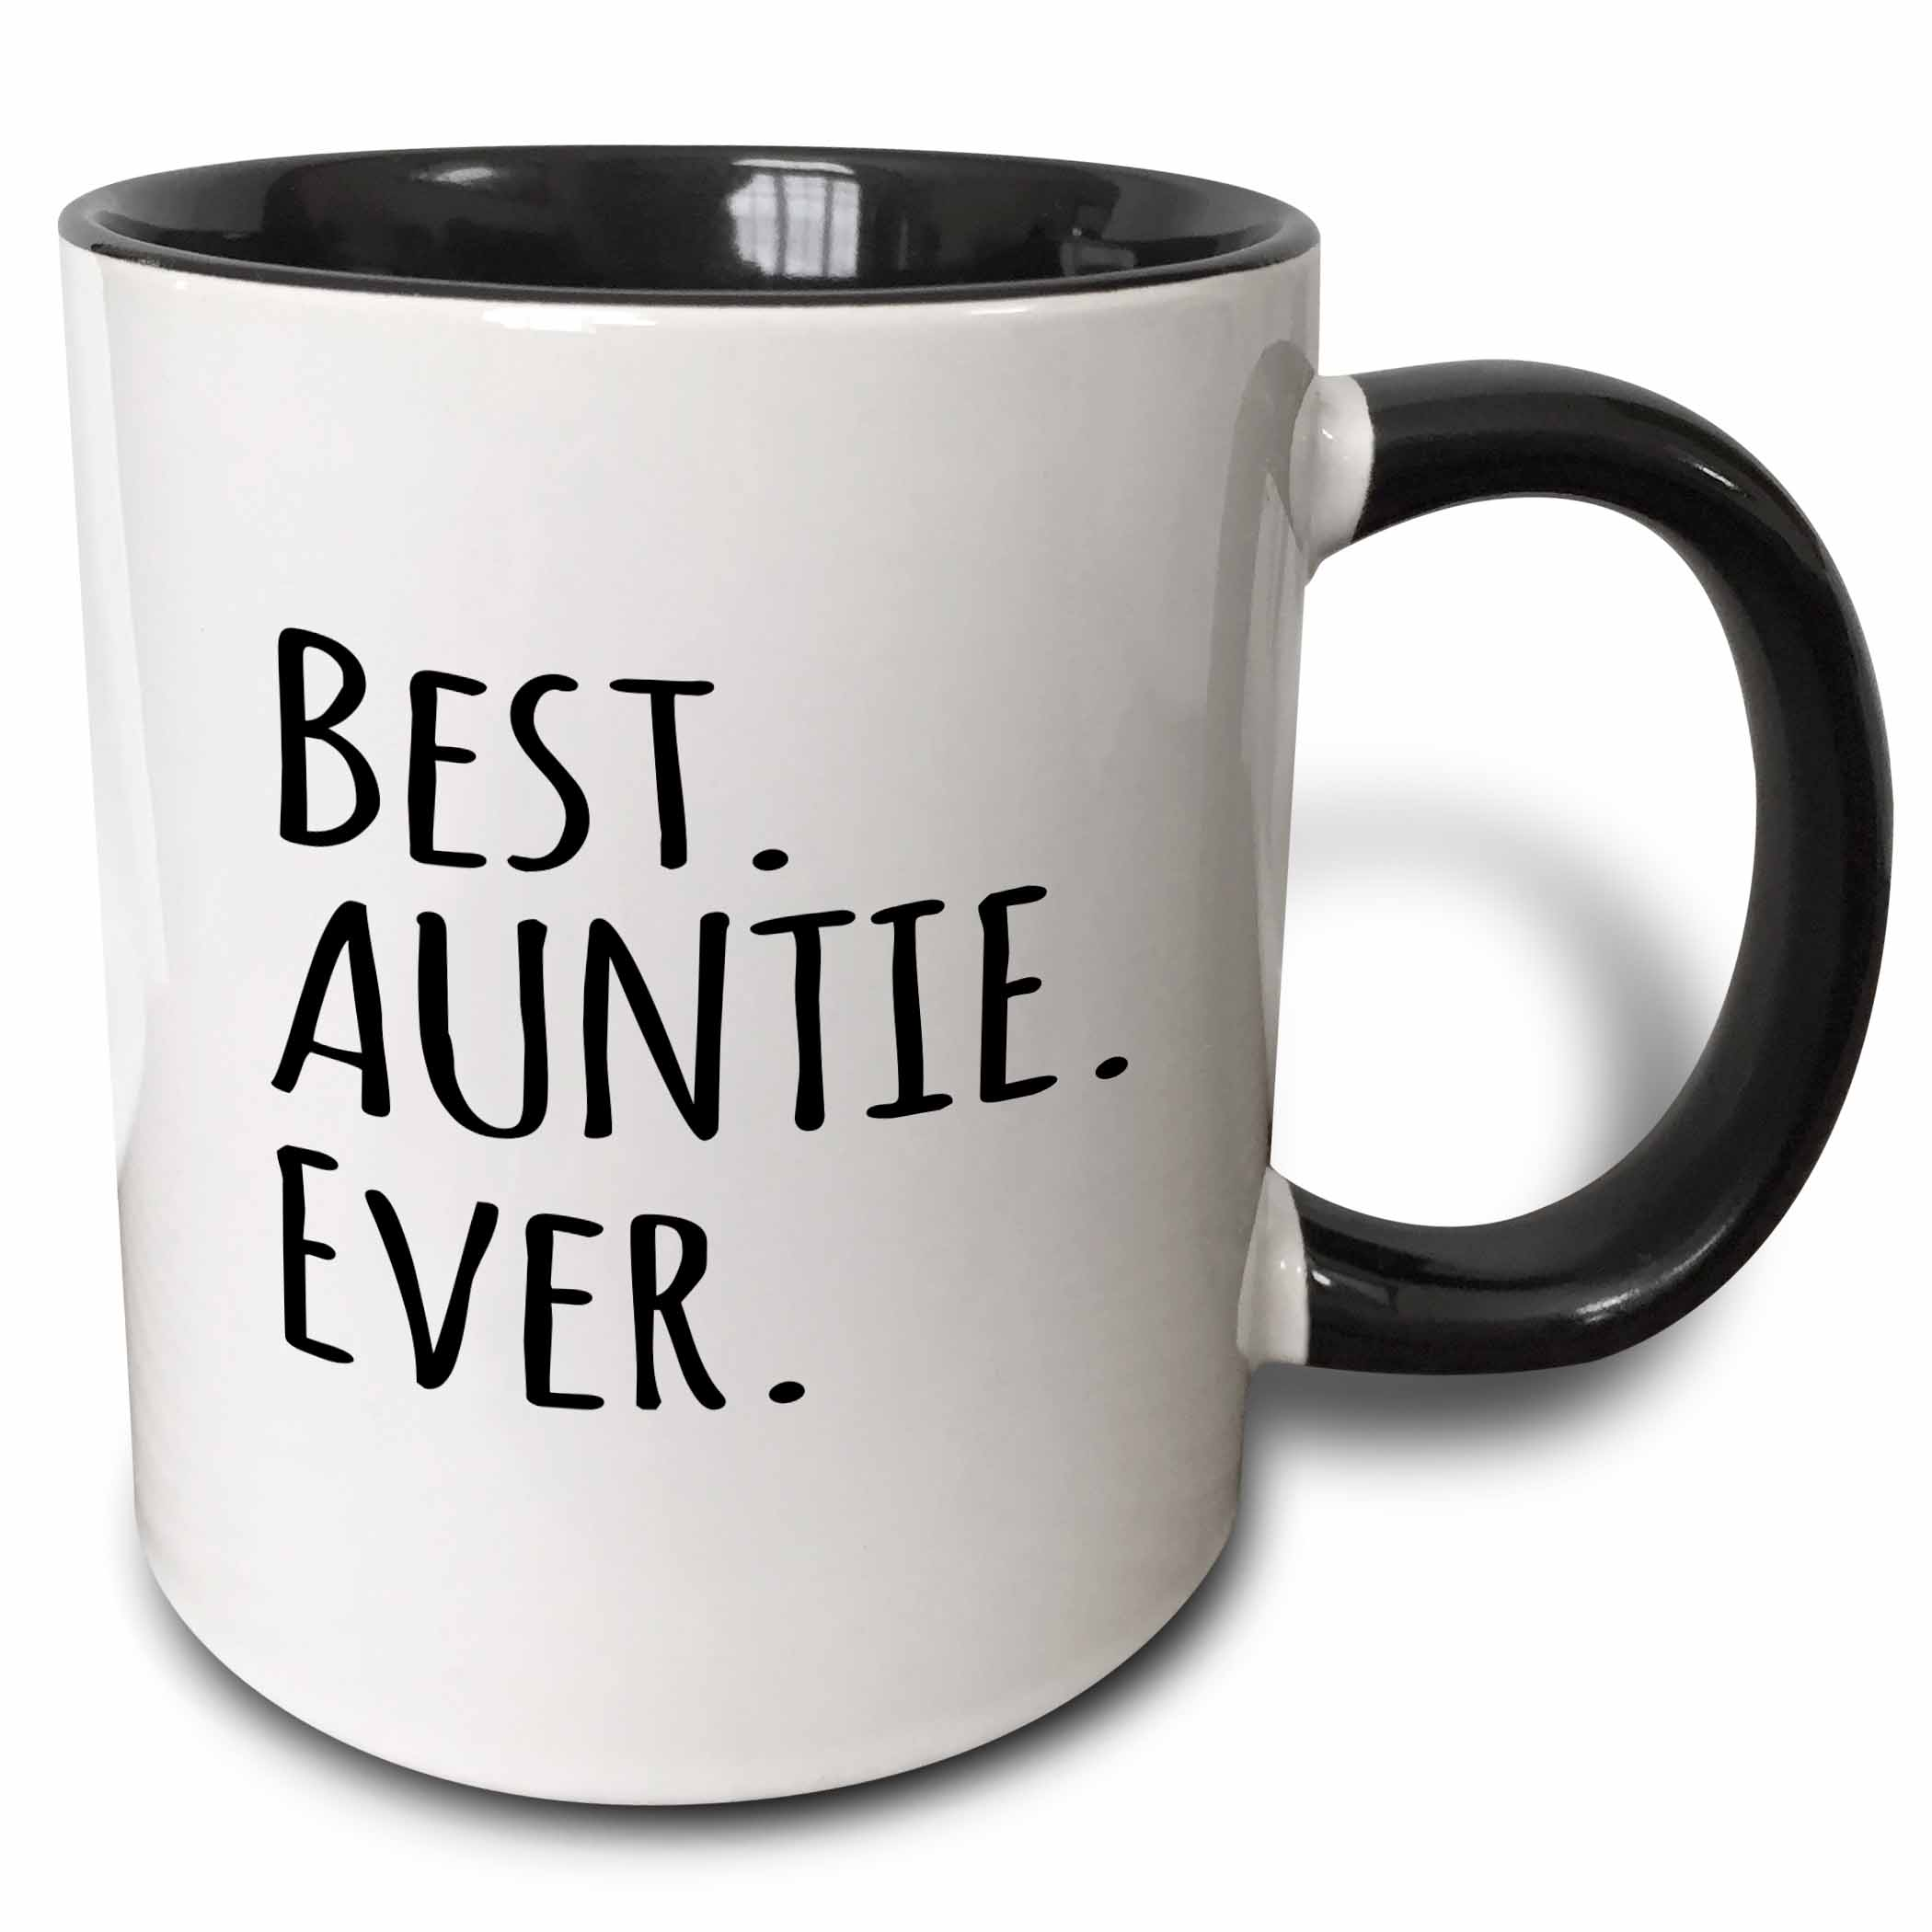 3dRose Best Auntie Ever Family gifts for relatives and honorary Aunts and Great Aunts black text, Two Tone... by 3dRose